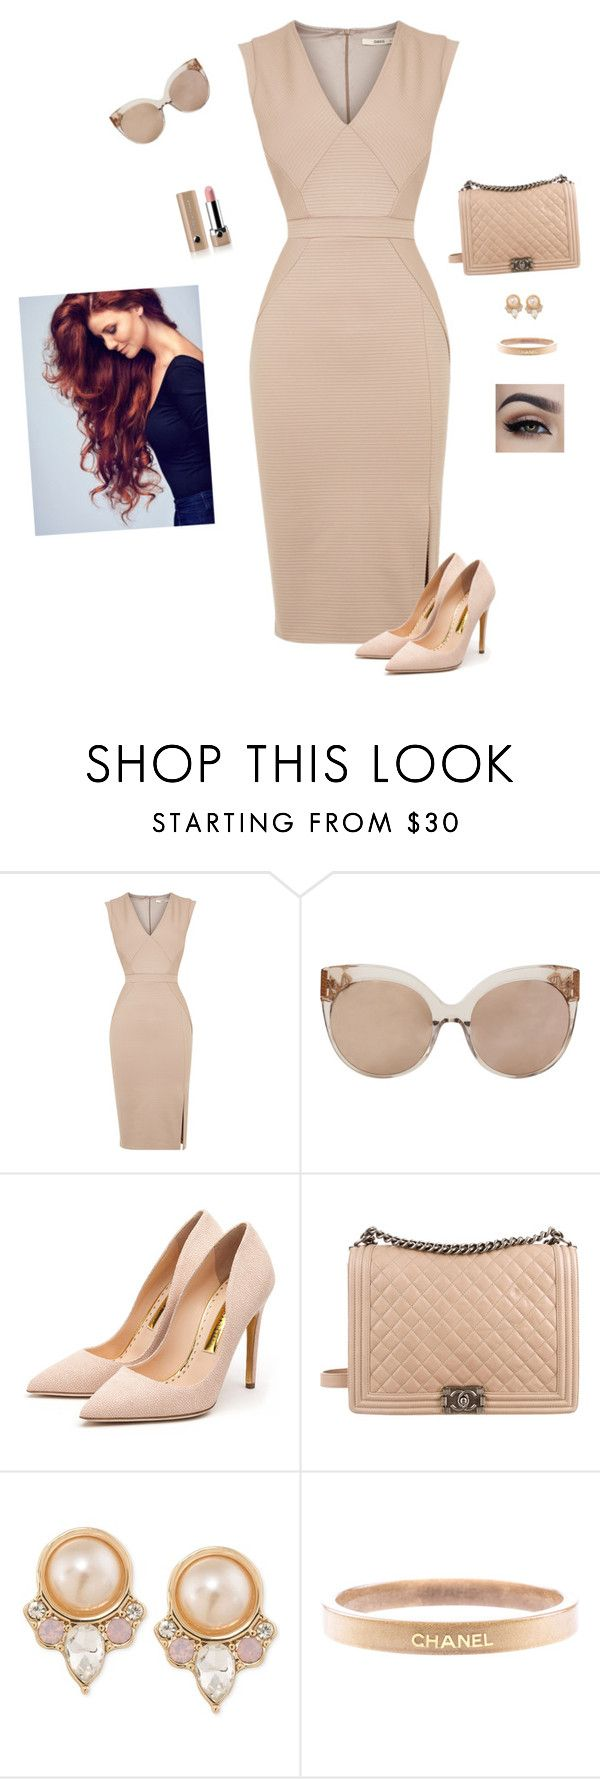 """The Lady Dressed In Nude"" by hanakdudley ❤ liked on Polyvore featuring Oasis, Linda Farrow, Rupert Sanderson, Chanel, Carolee, Marc Jacobs, women's clothing, women, female and woman"